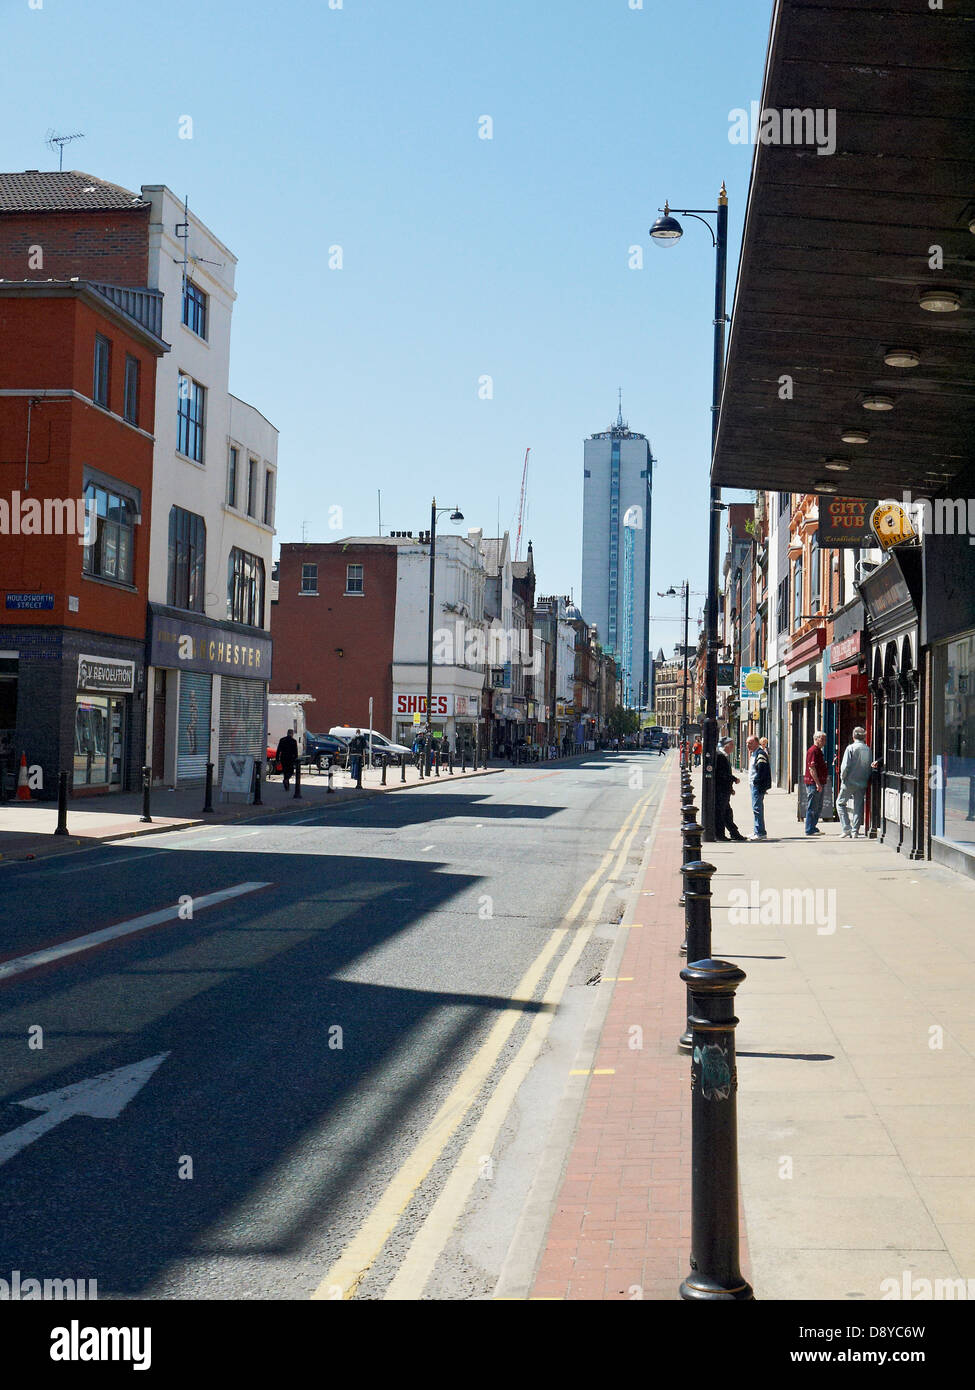 View into Oldham Street towards City Tower in Manchester UK - Stock Image